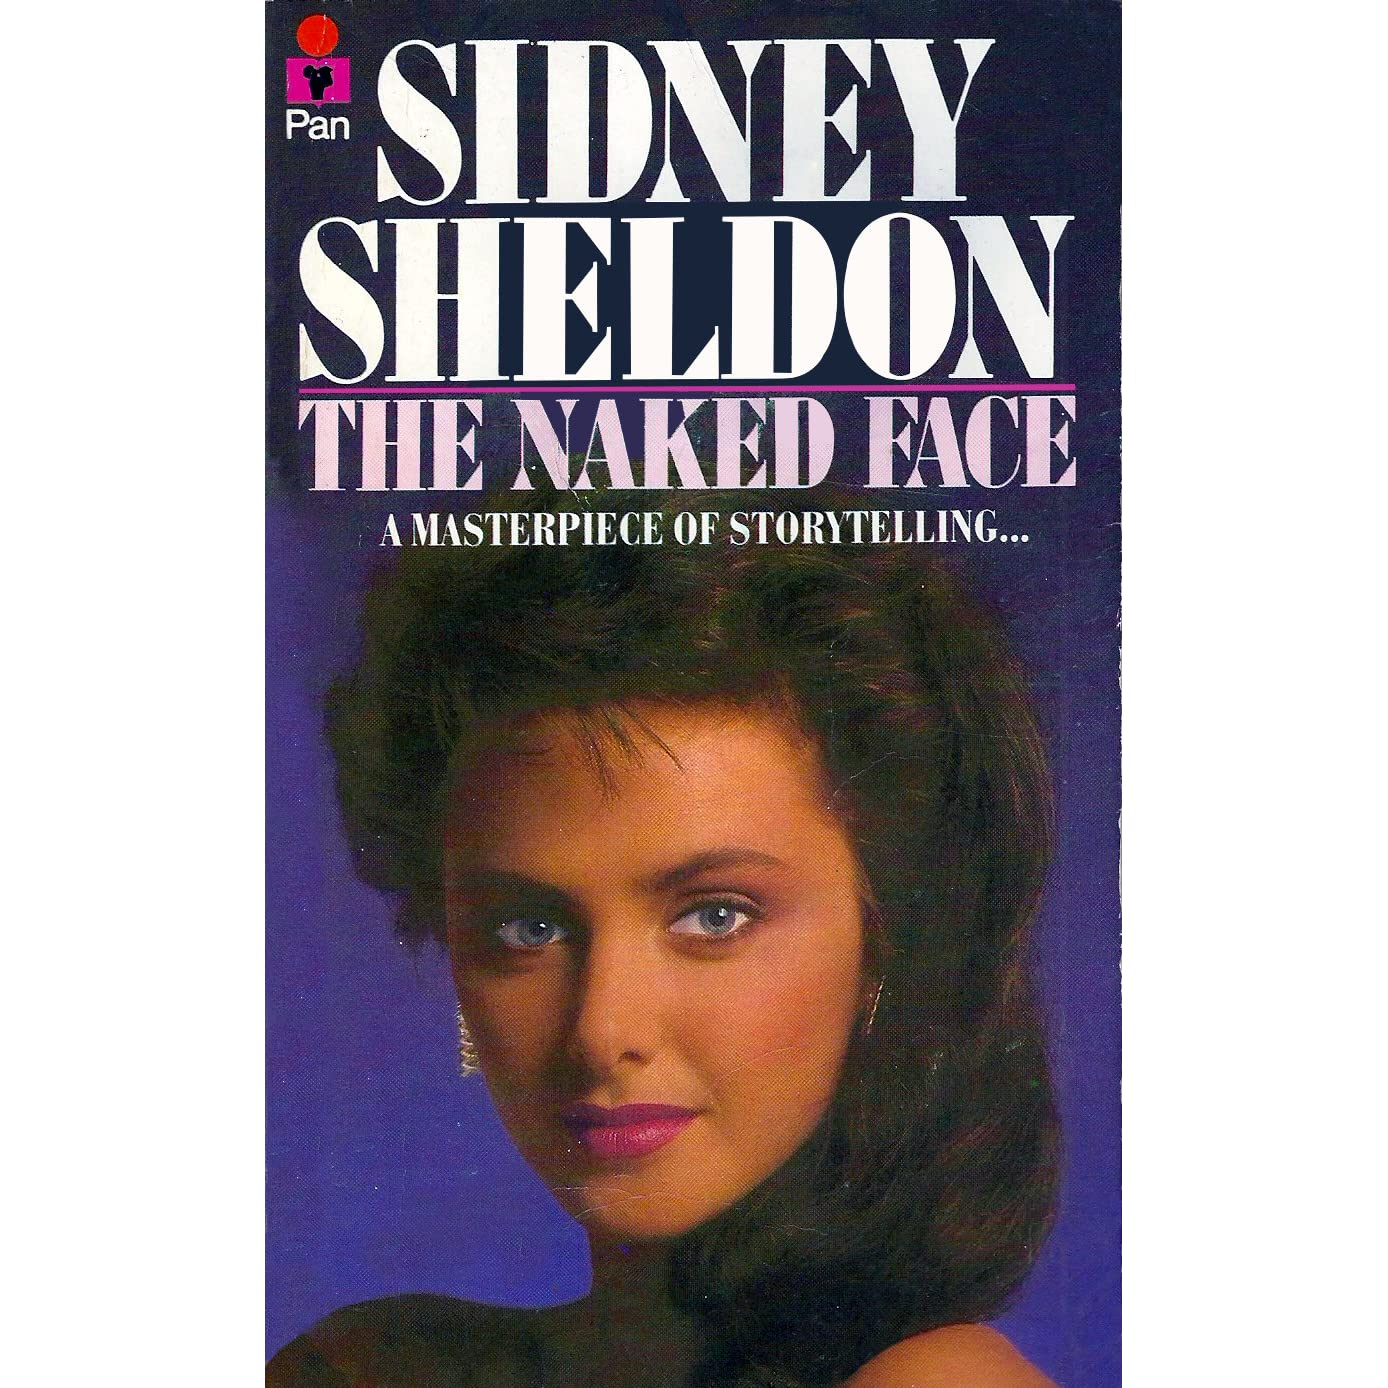 hairy-the-naked-face-by-sidney-sheldon